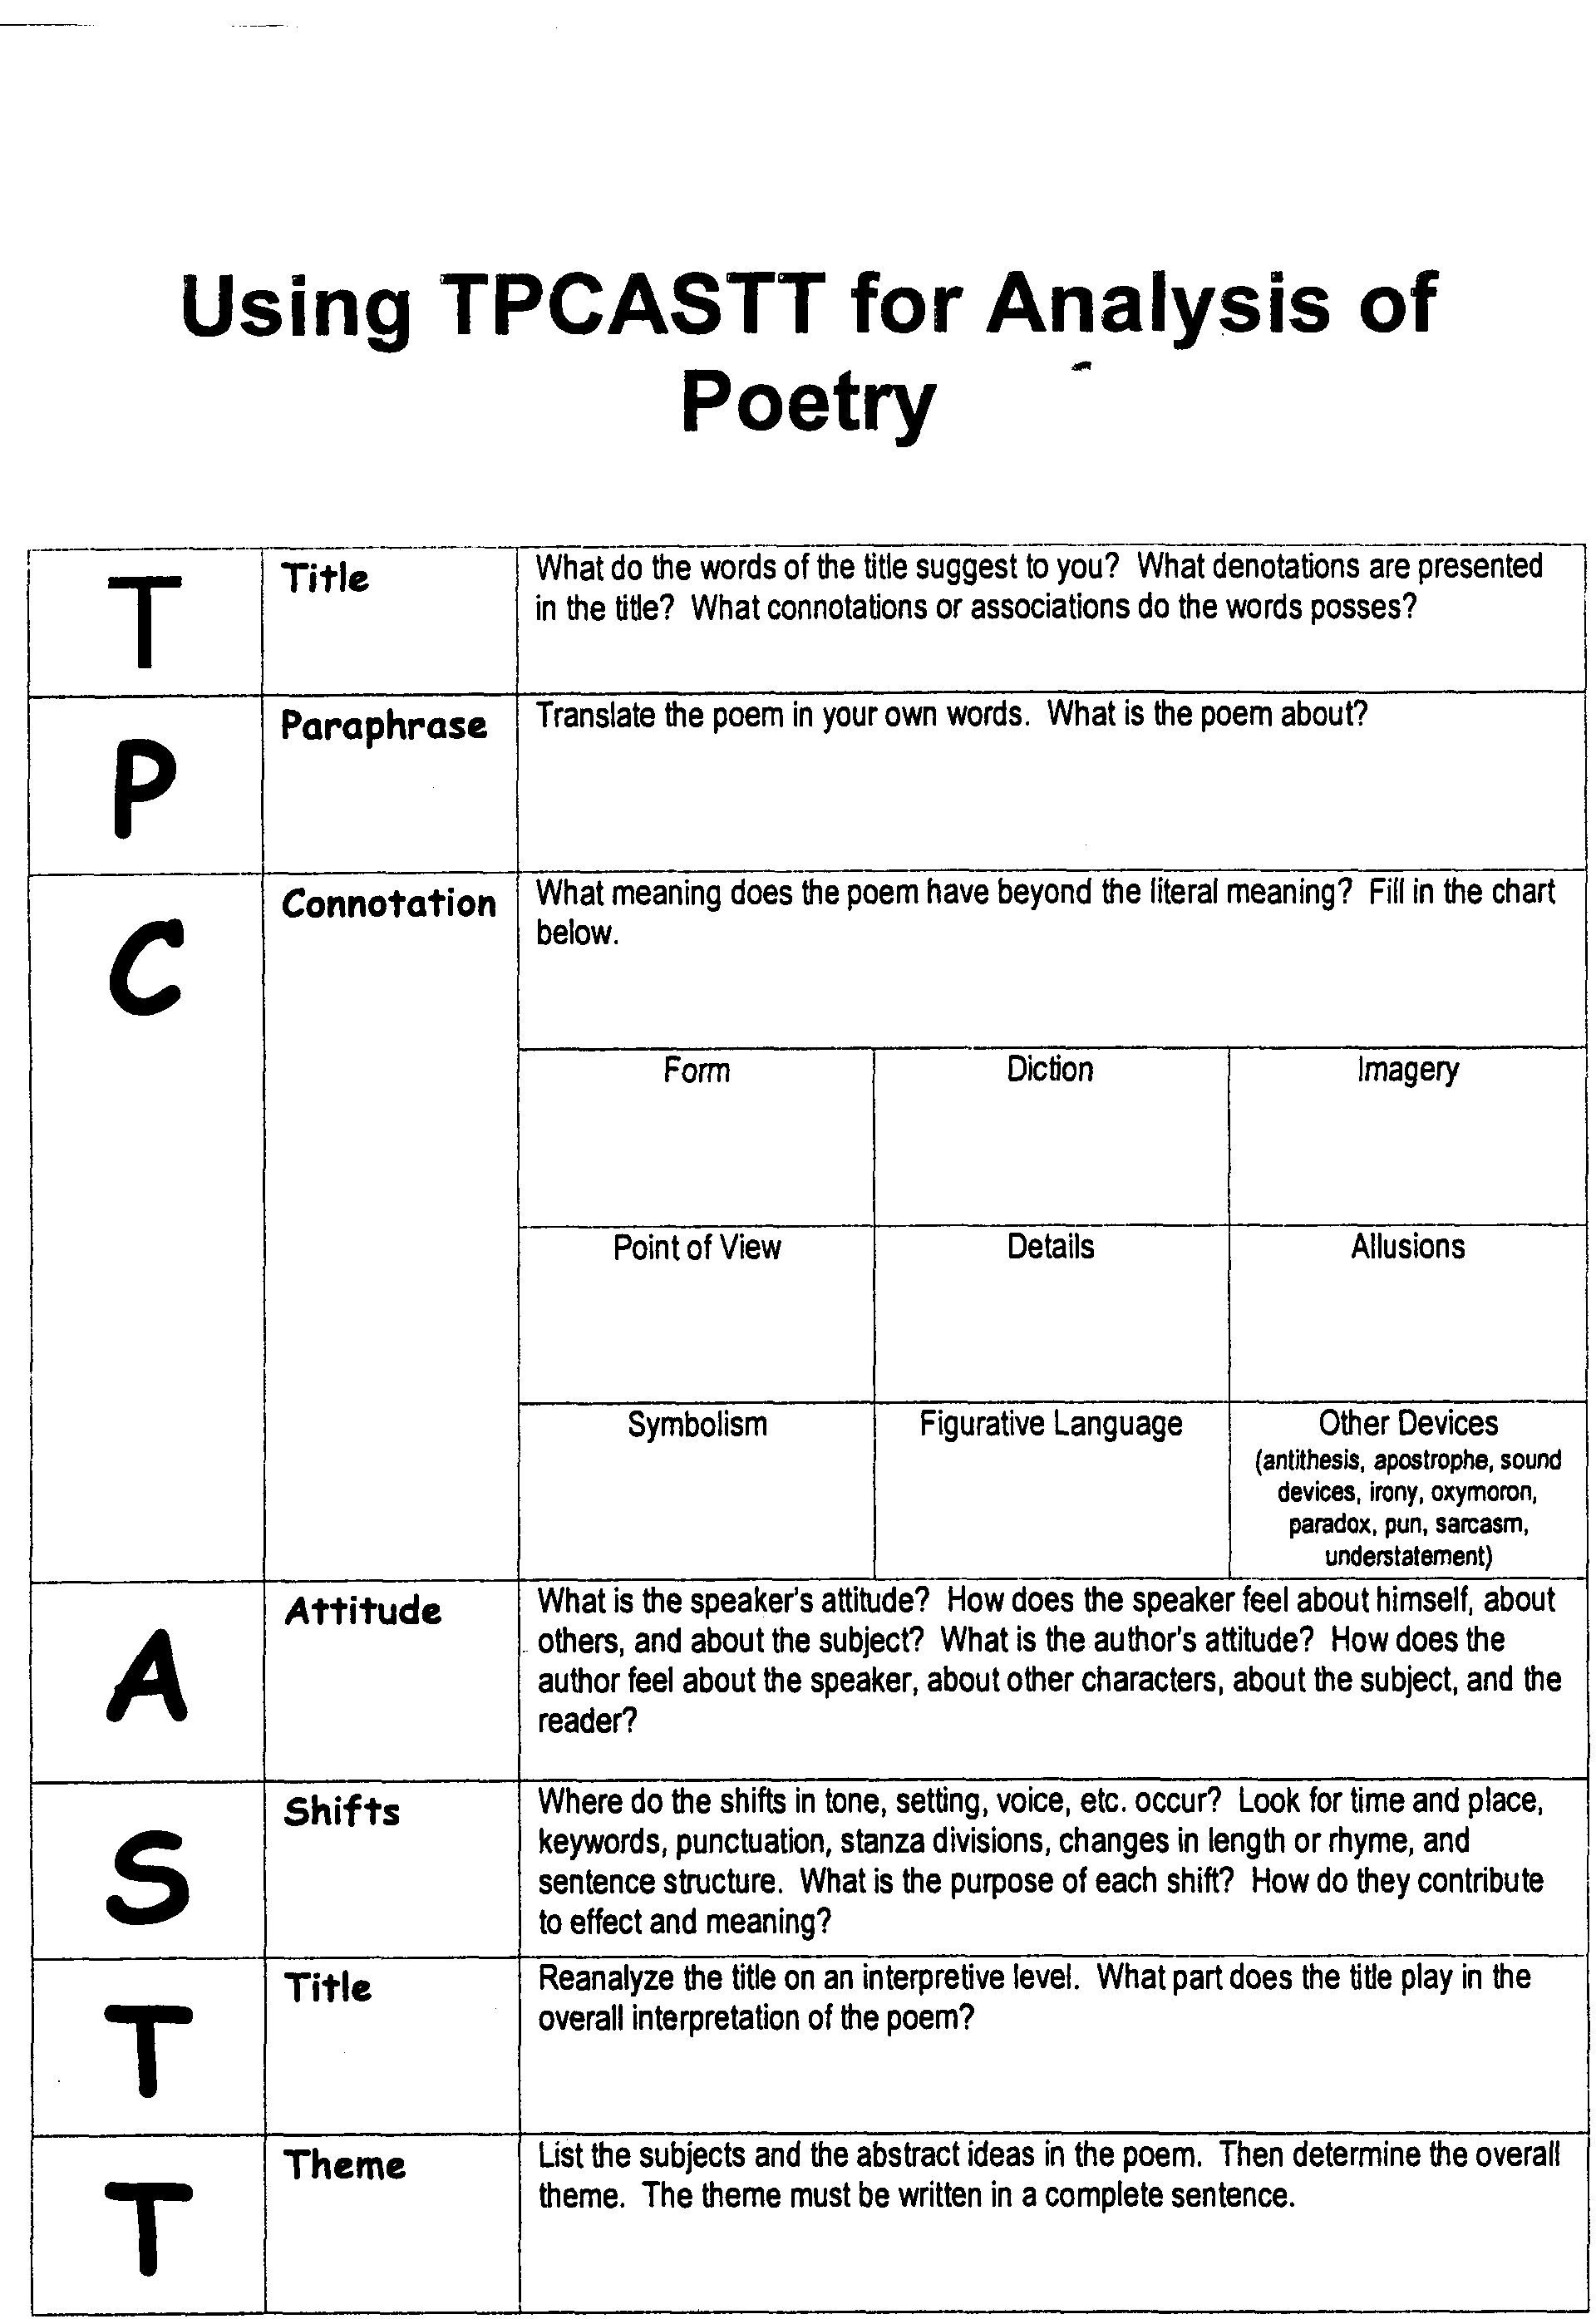 tpcastt form language arts resources poetry i ve used tpcastt for a long time and i ve always been frustrated that the c section isn t analyzed very thoroughly requires a lot of guidance